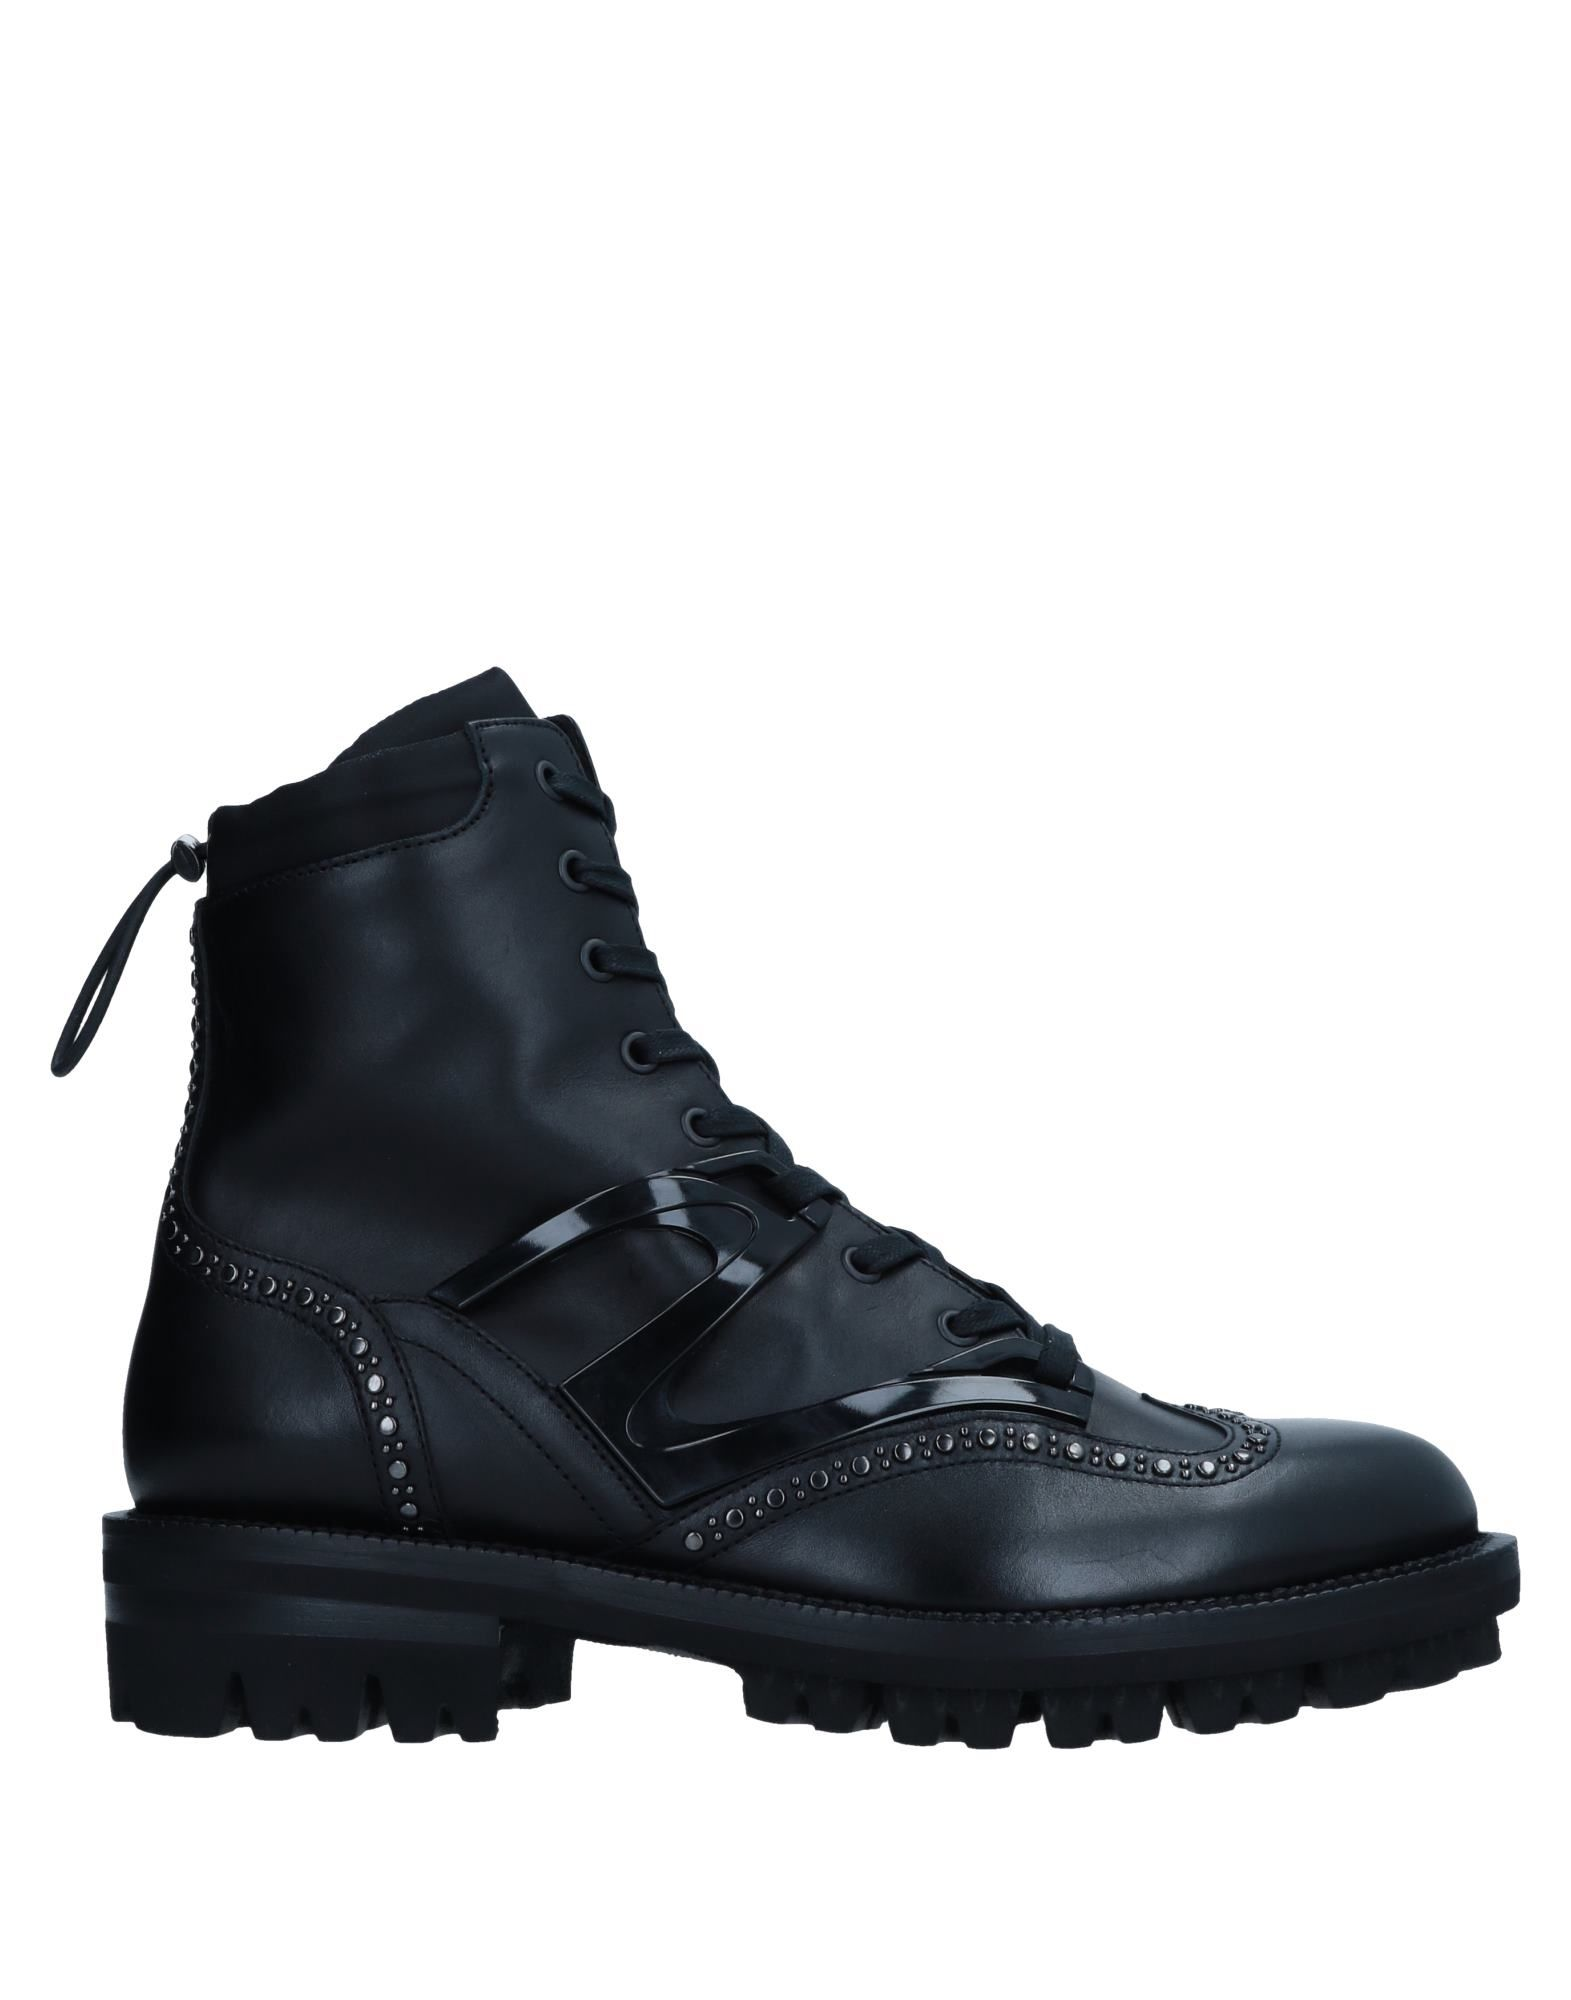 Dsquared2  Boots - Men Dsquared2 Boots online on  Dsquared2 United Kingdom - 11553850AJ ca9071